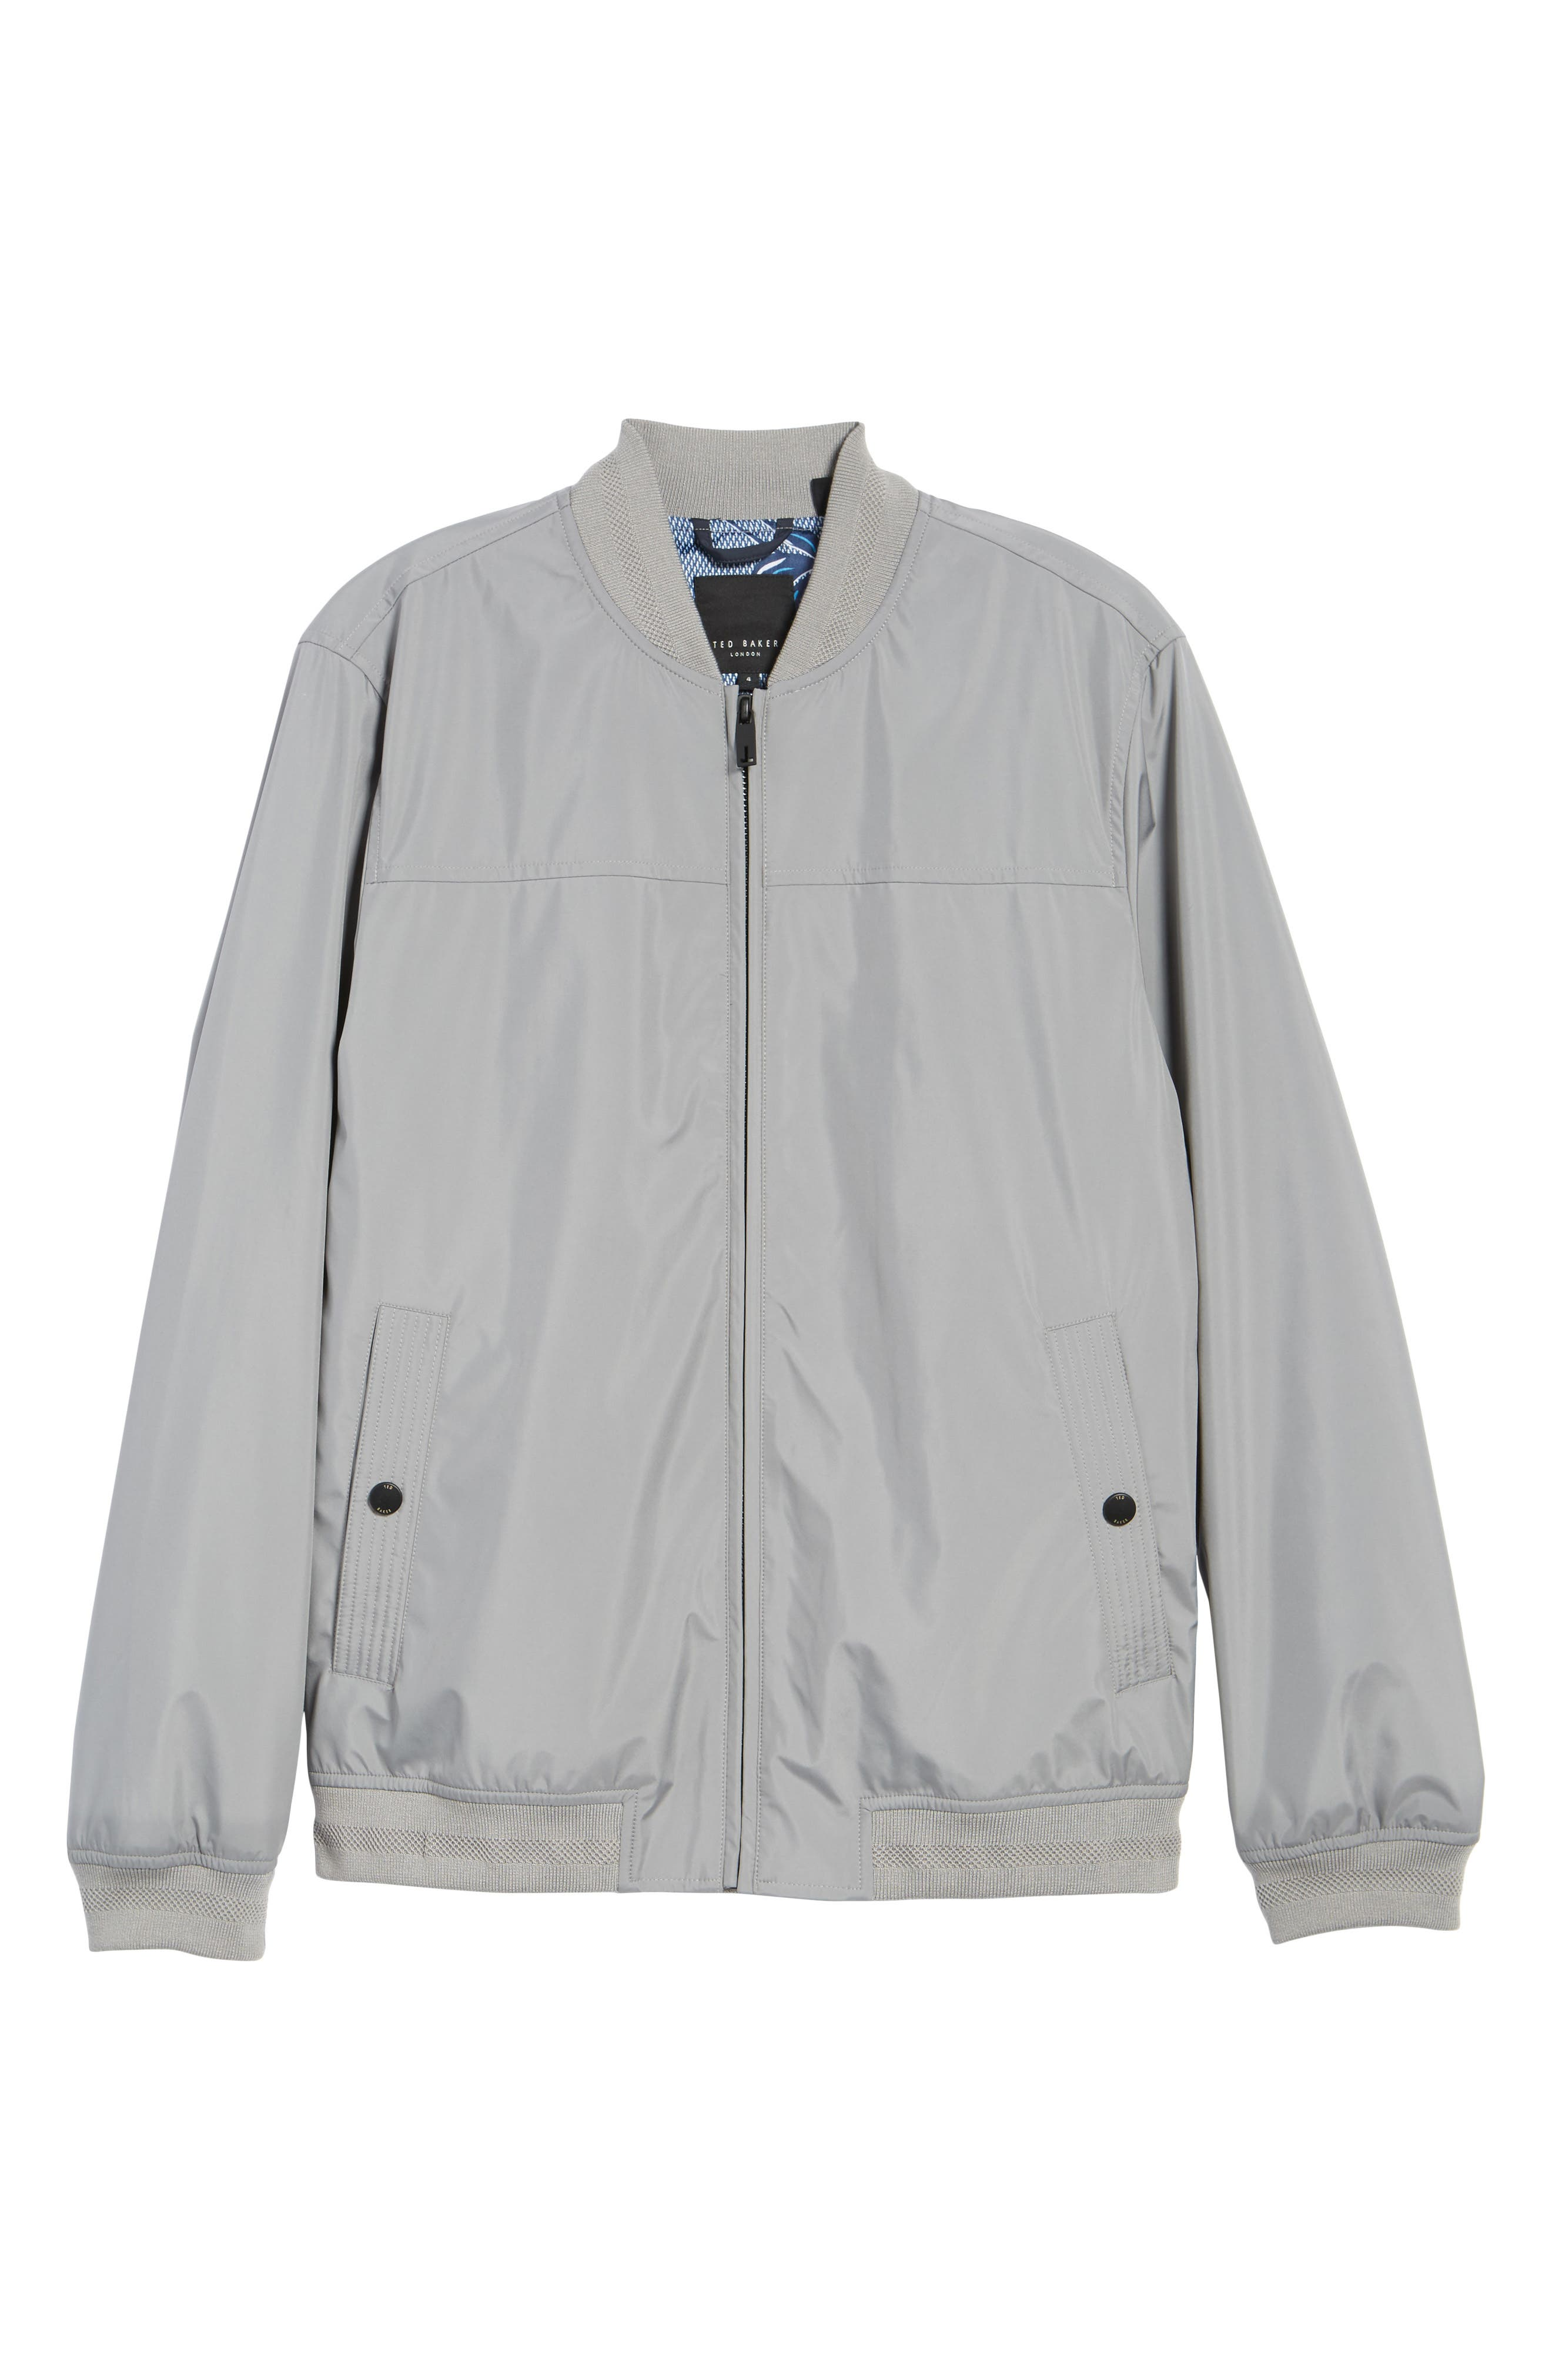 Ohta Bomber Jacket,                             Alternate thumbnail 5, color,                             030